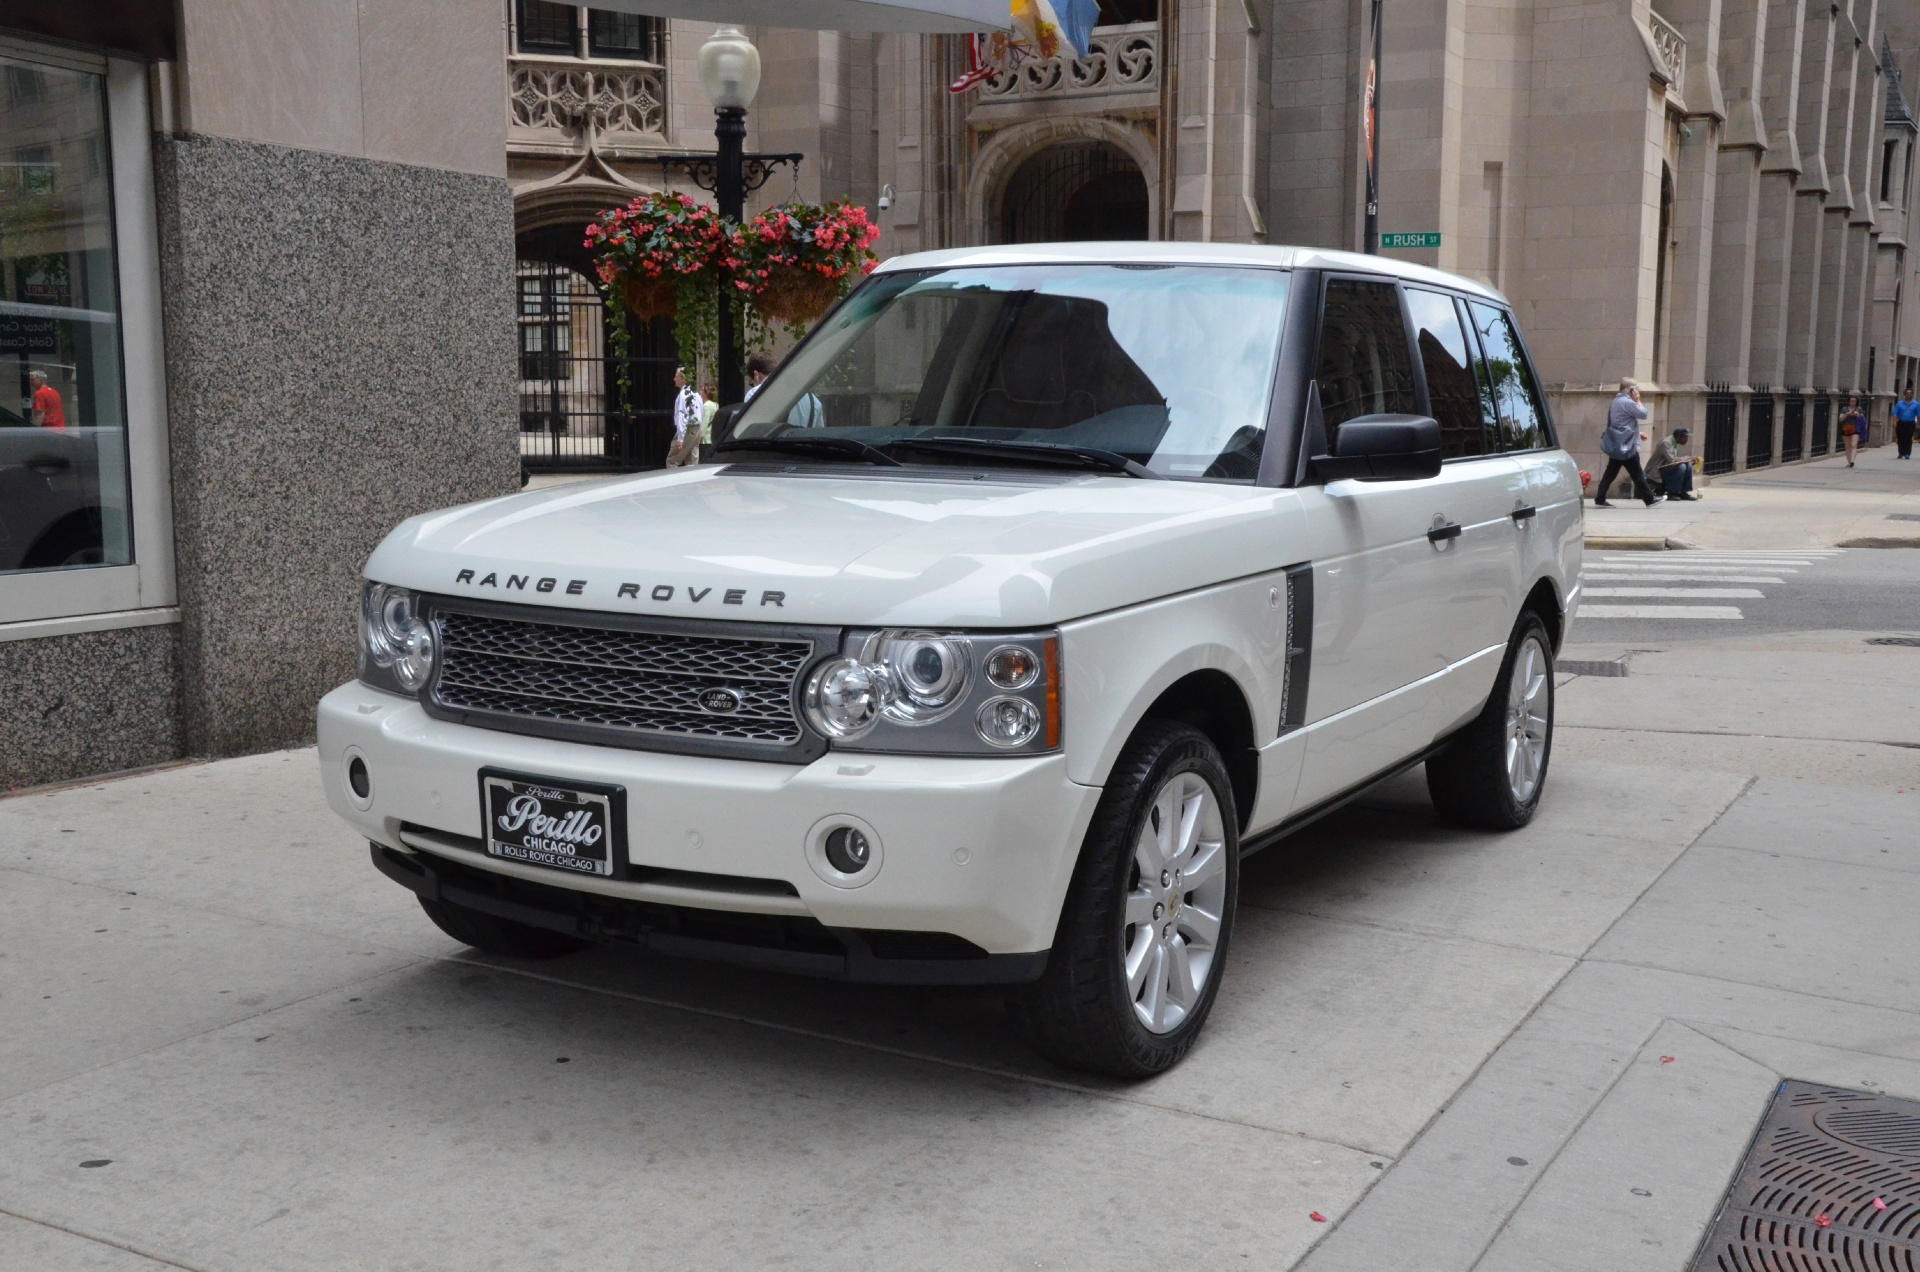 2007 Land Rover Range Rover Supercharged Stock GC1432 for sale